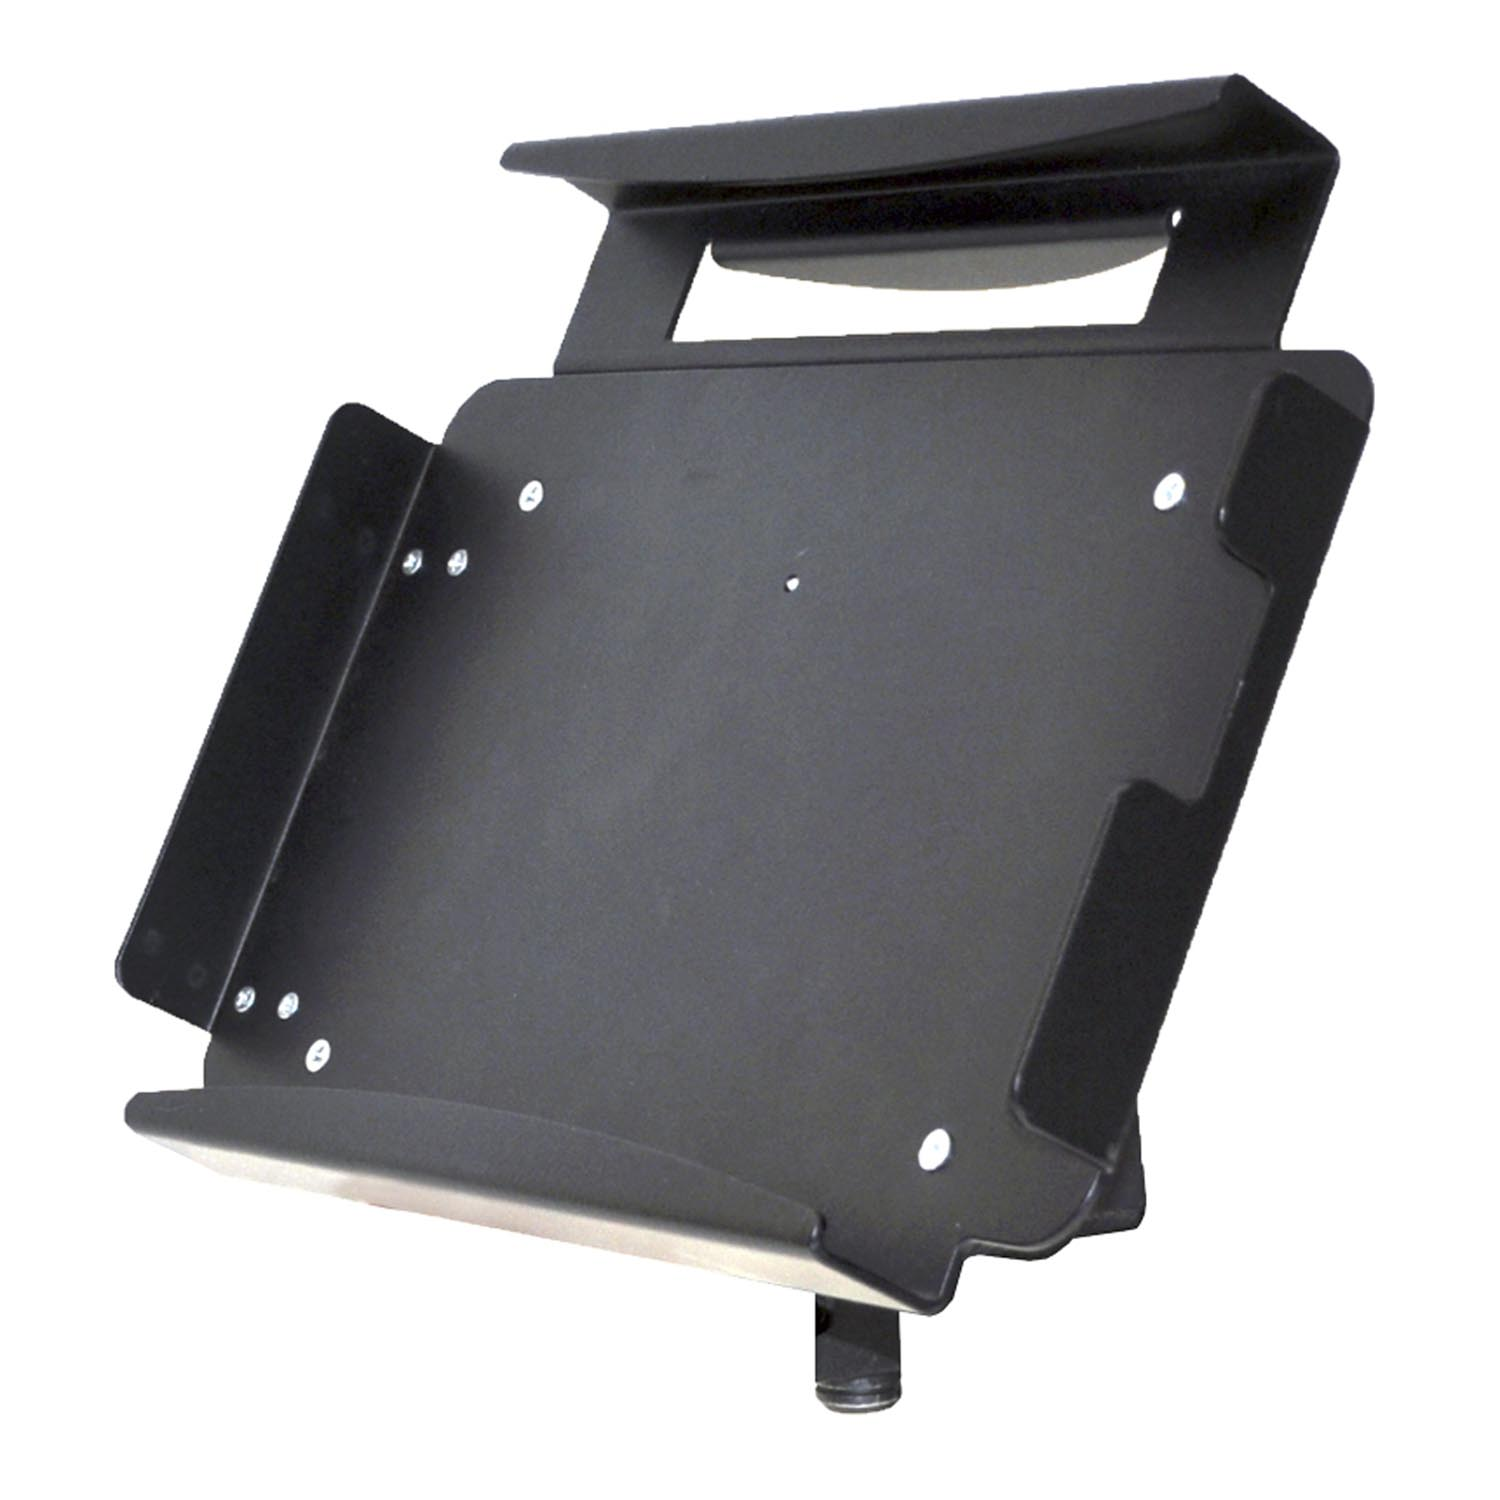 Jotto Desk Kodiak Mobile iPad Mounting Station